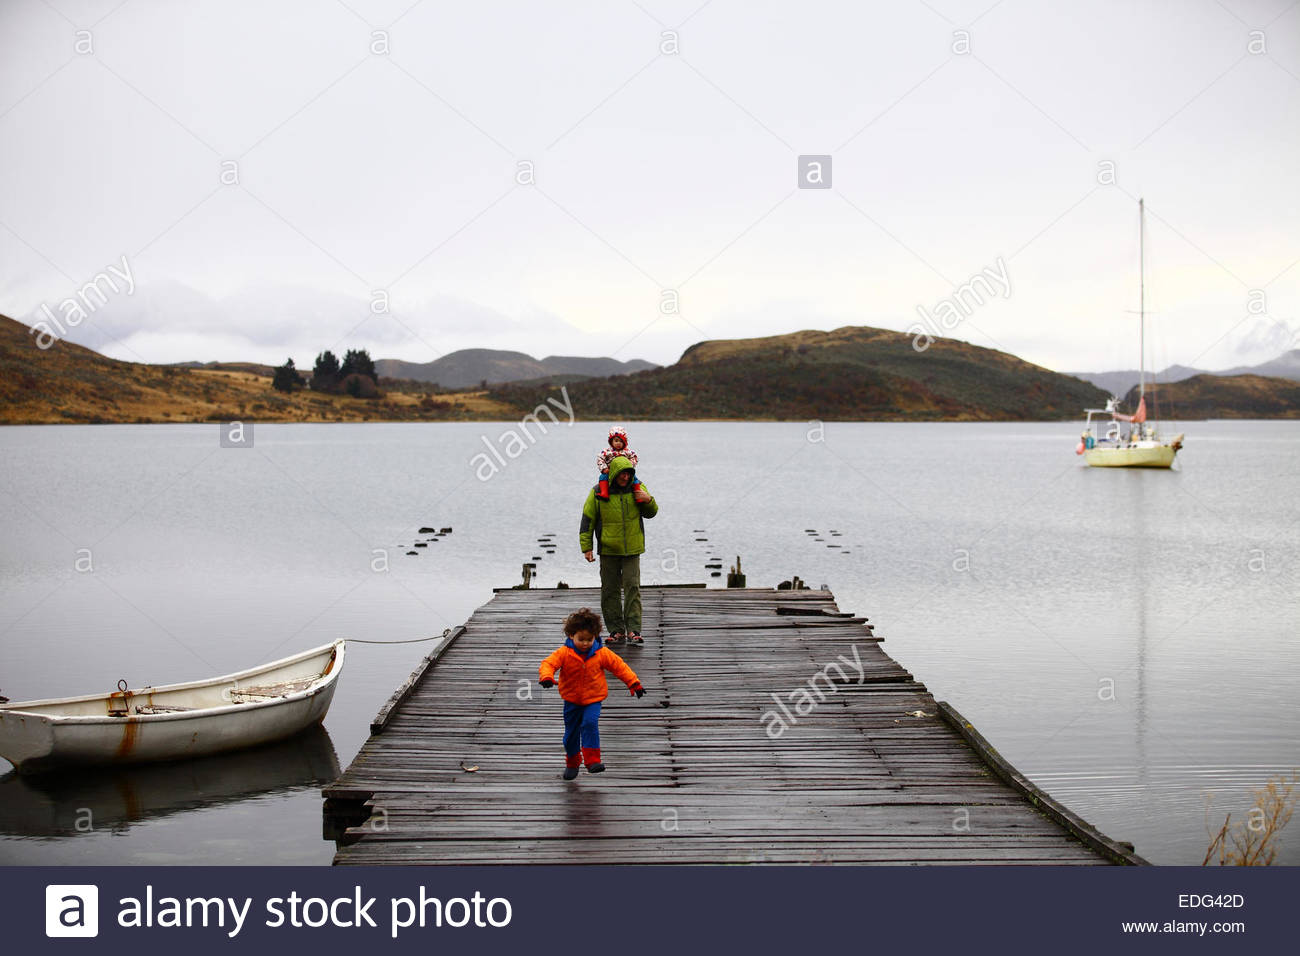 A father walks along an old pier used by Pesca Chile in the Eberhard fjord, near Puerto Prat, Chile. - Stock Image